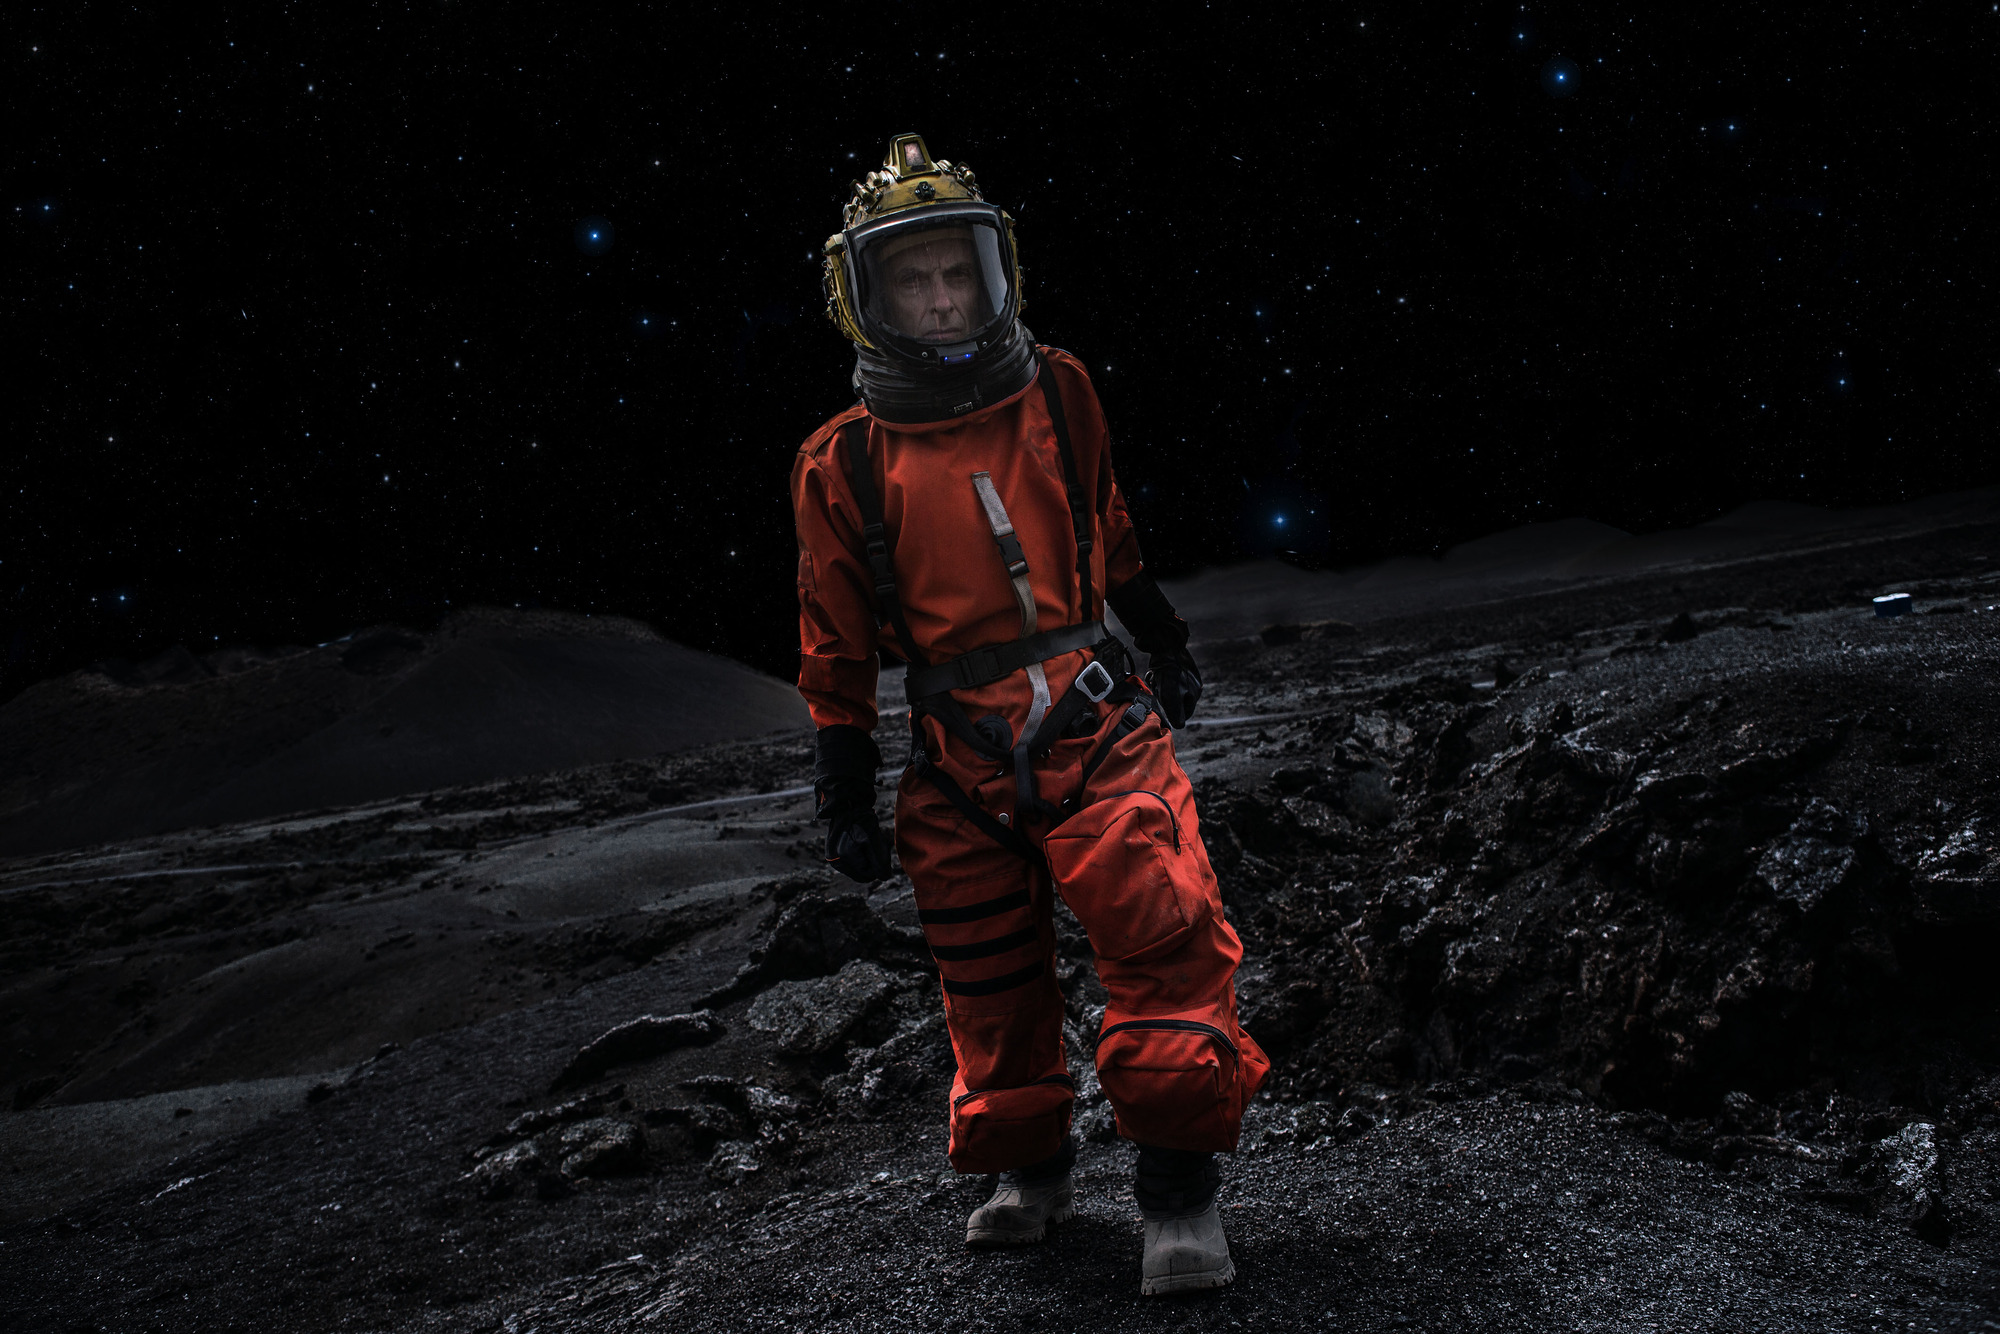 Doctor Who: Kill the Moon – where have we seen that spacesuit before?